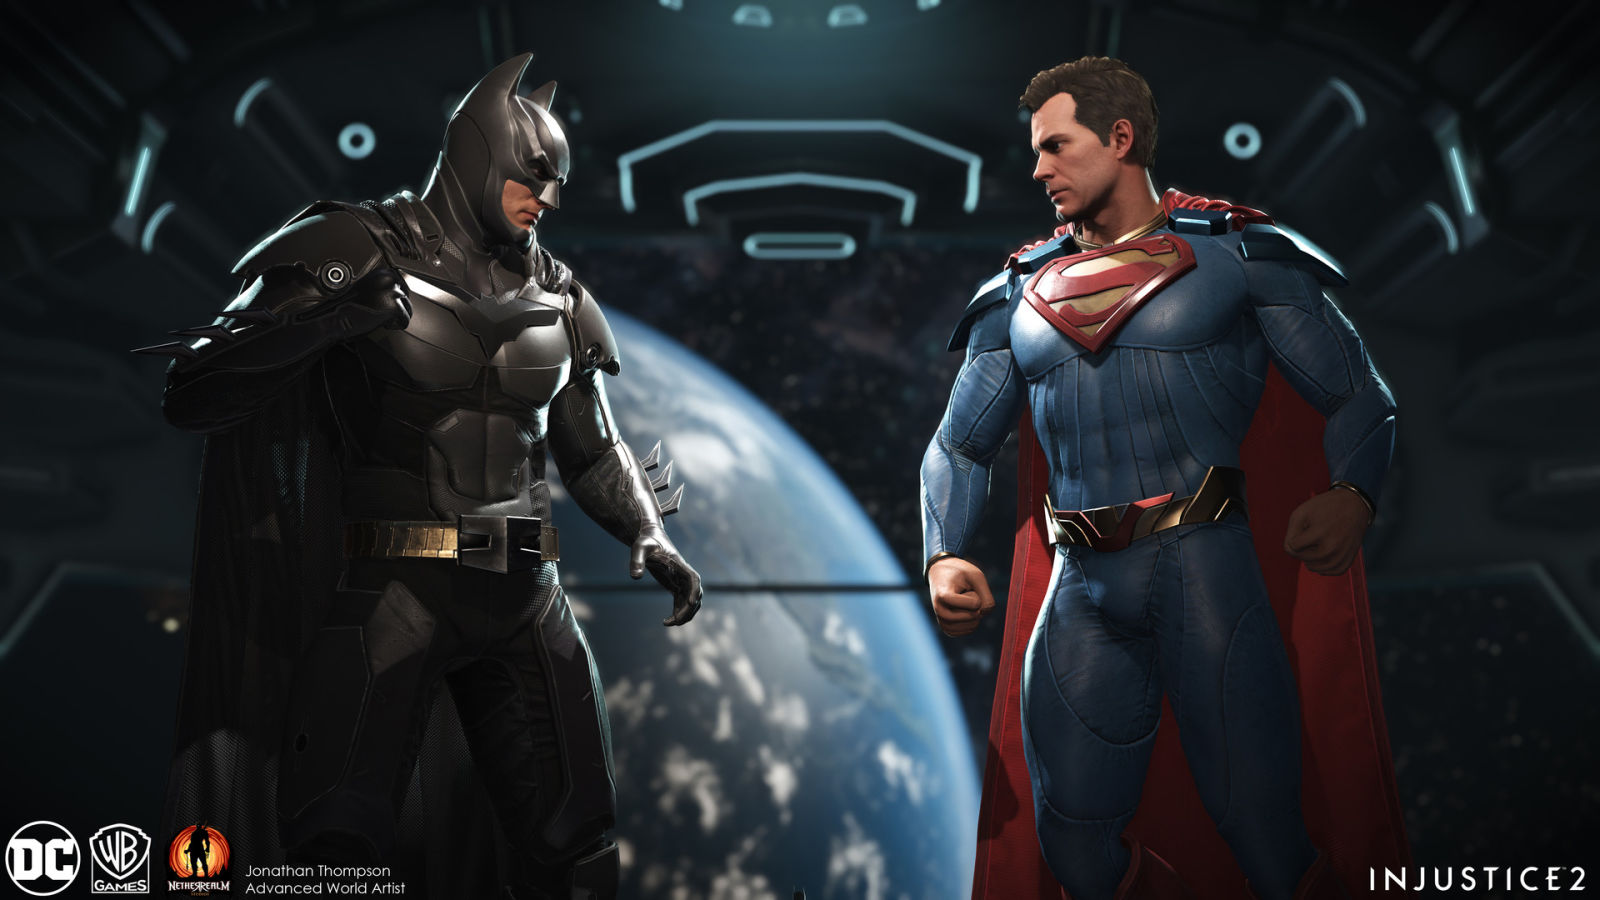 Injustice 2 On Pc Could Share A Release Date With The Justice Leagu Ps4 Region 3 League Movie